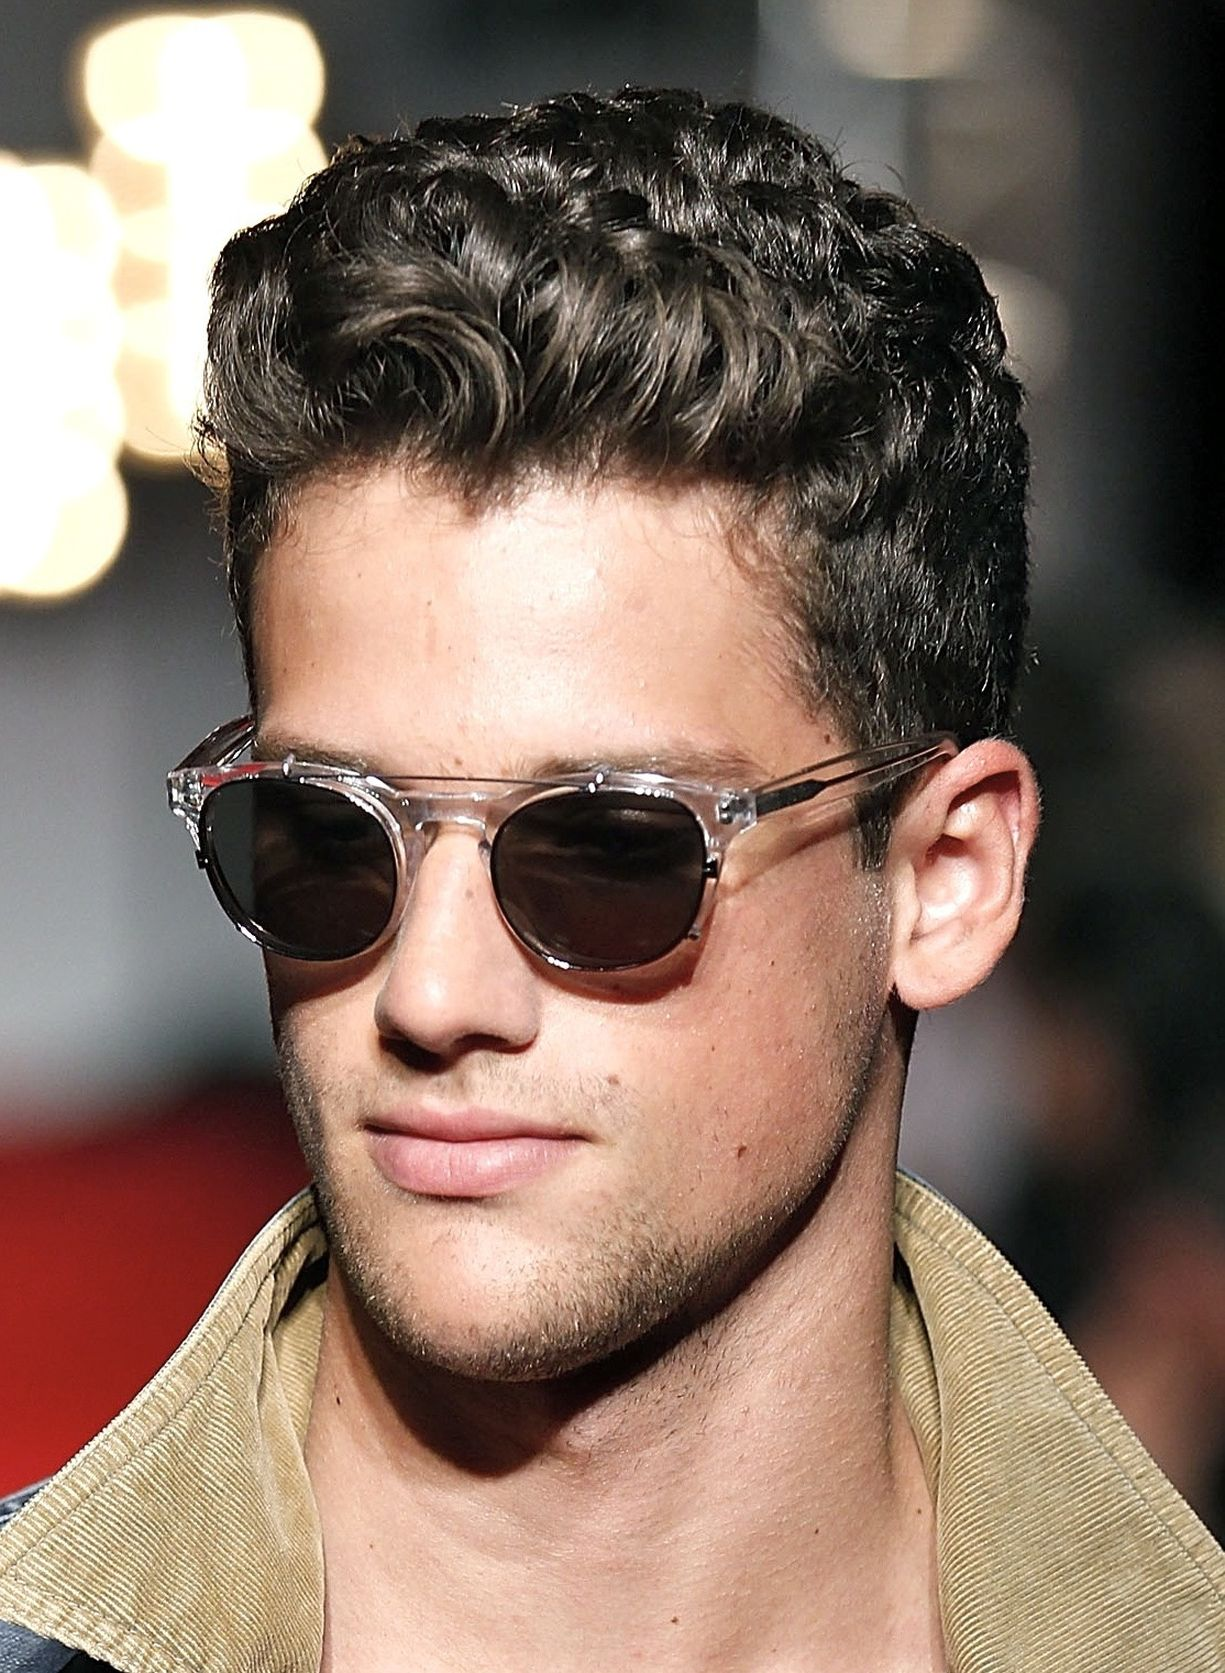 Hairstyles For Men With Thick Curly Hair Wavy Hair Men Men S Curly Hairstyles Curly Hair Men